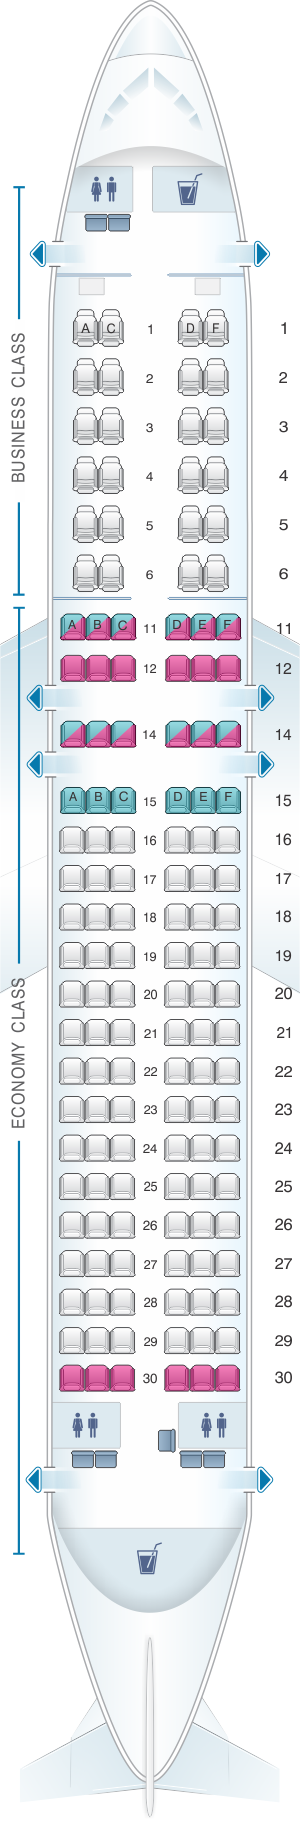 south african airways seat map